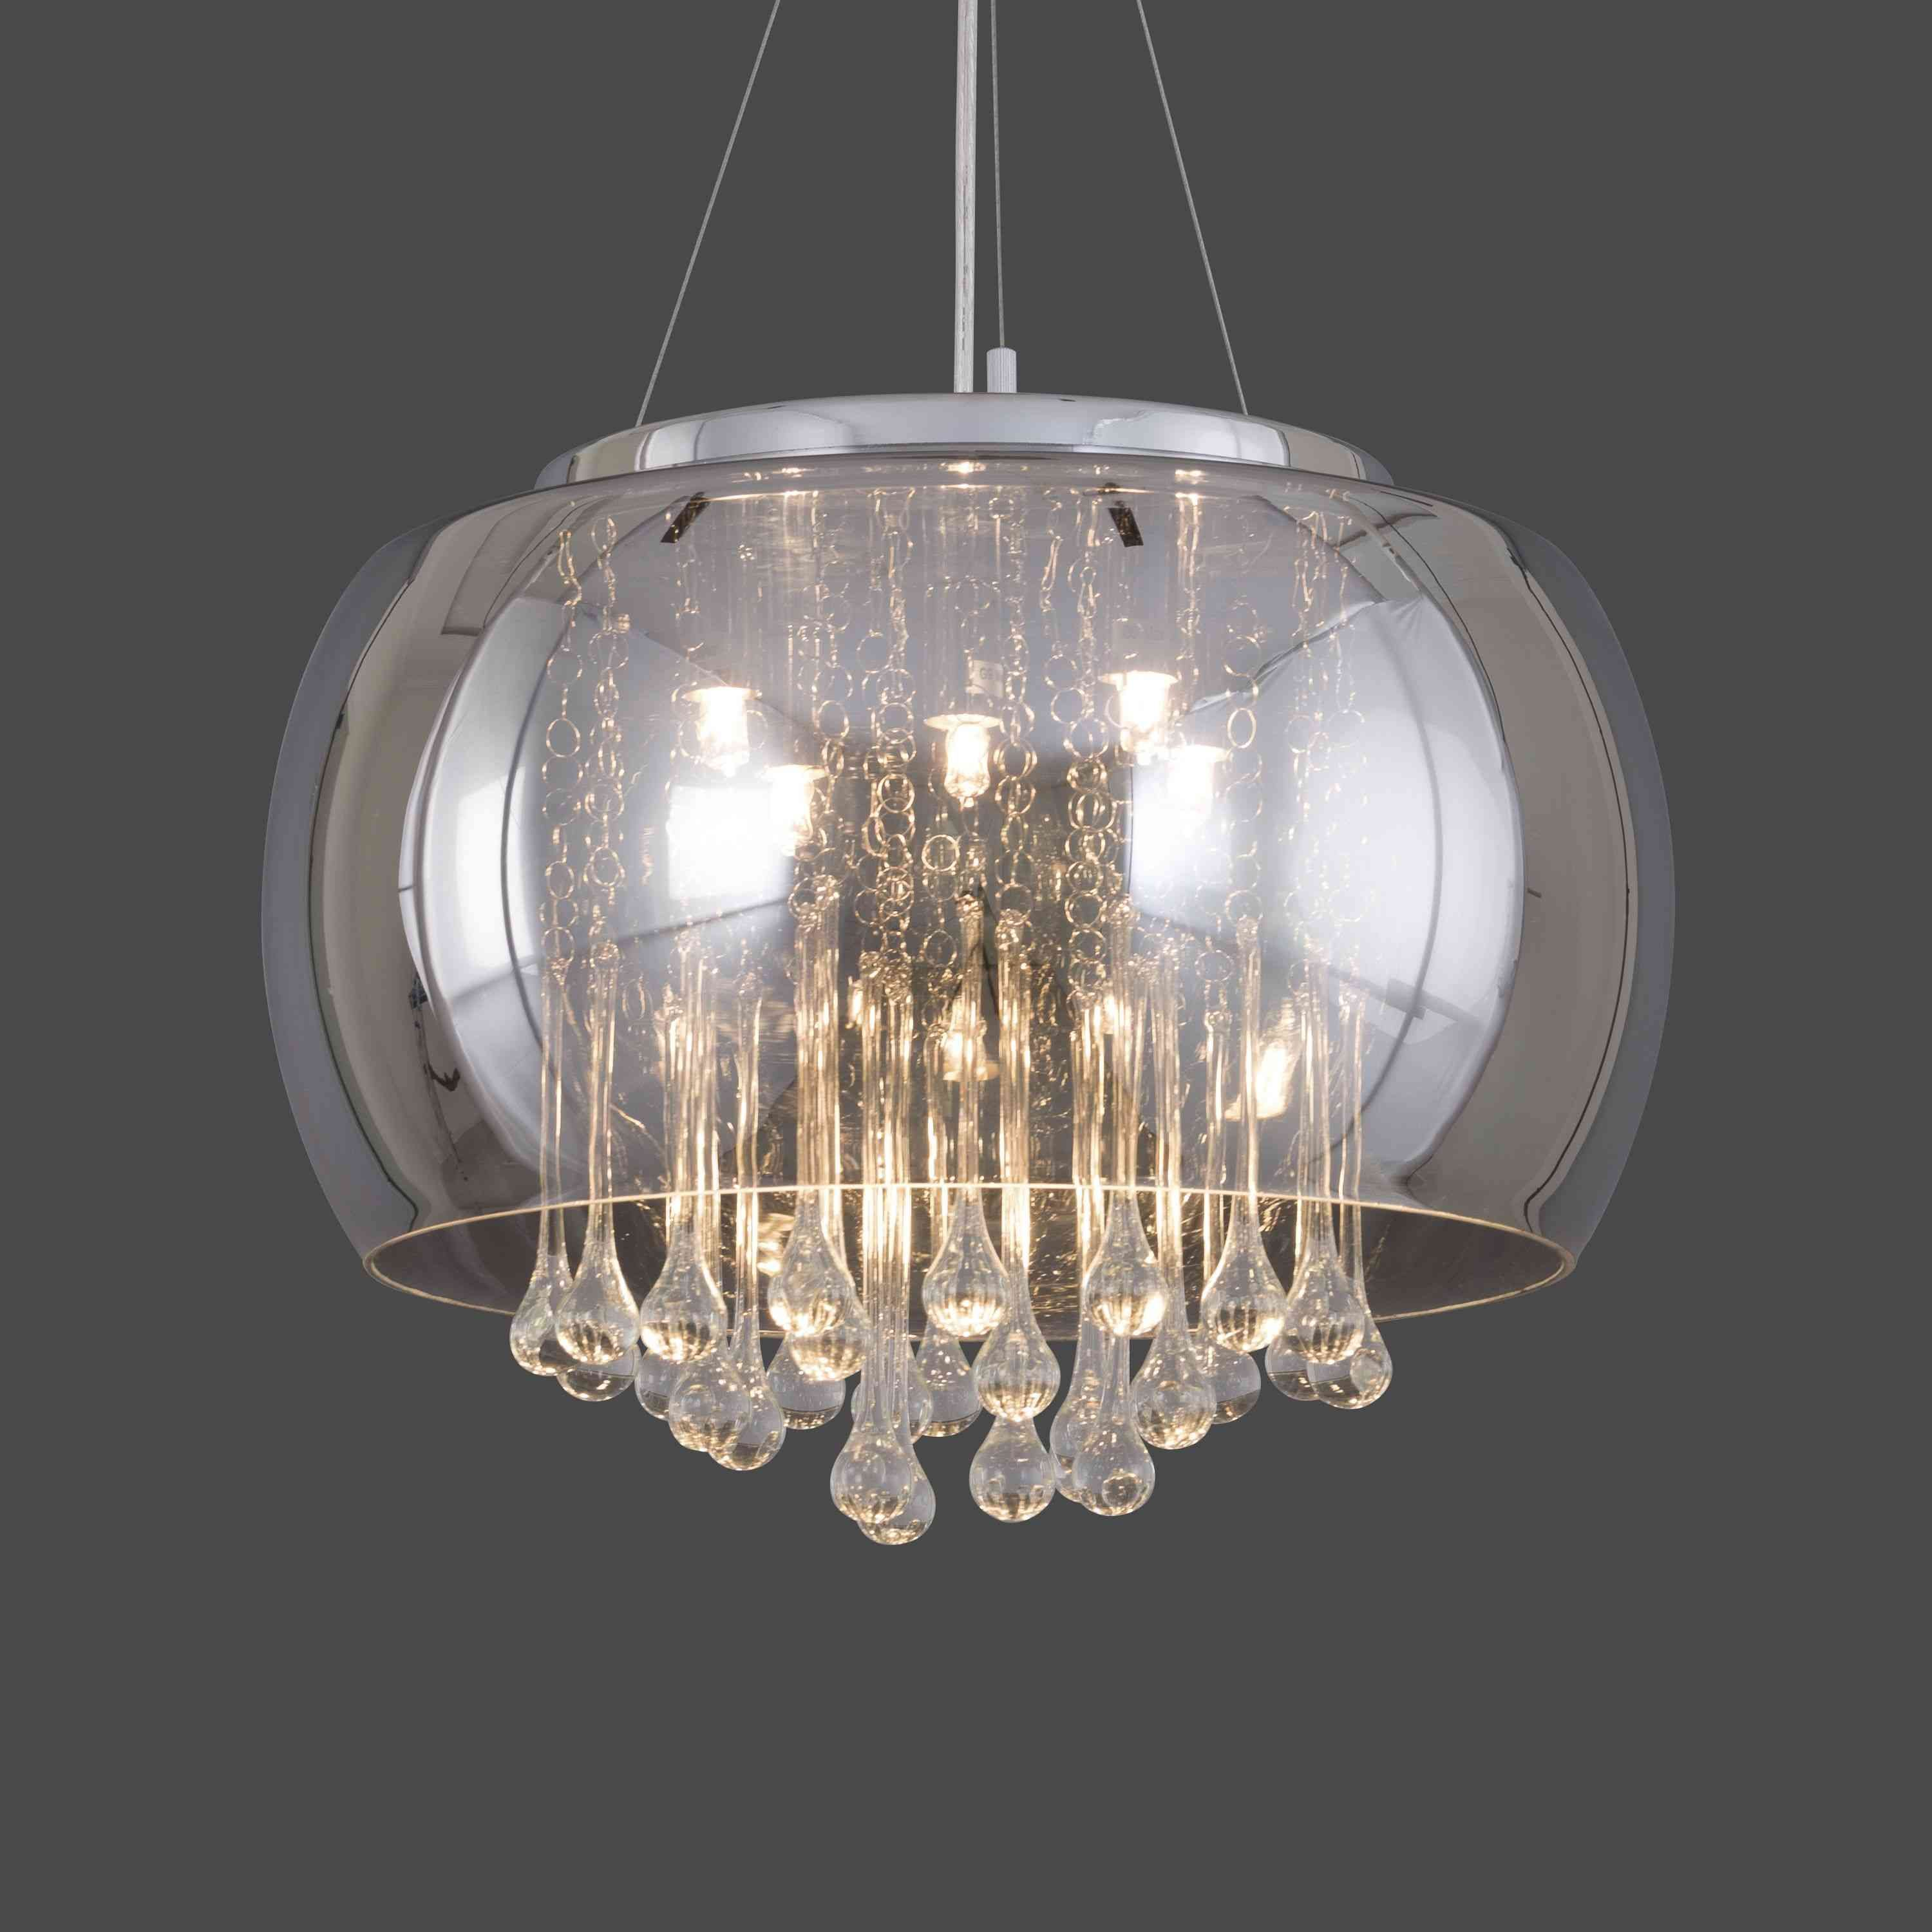 Enamoured Buy Premium Pendant Lights Online In India At A Great